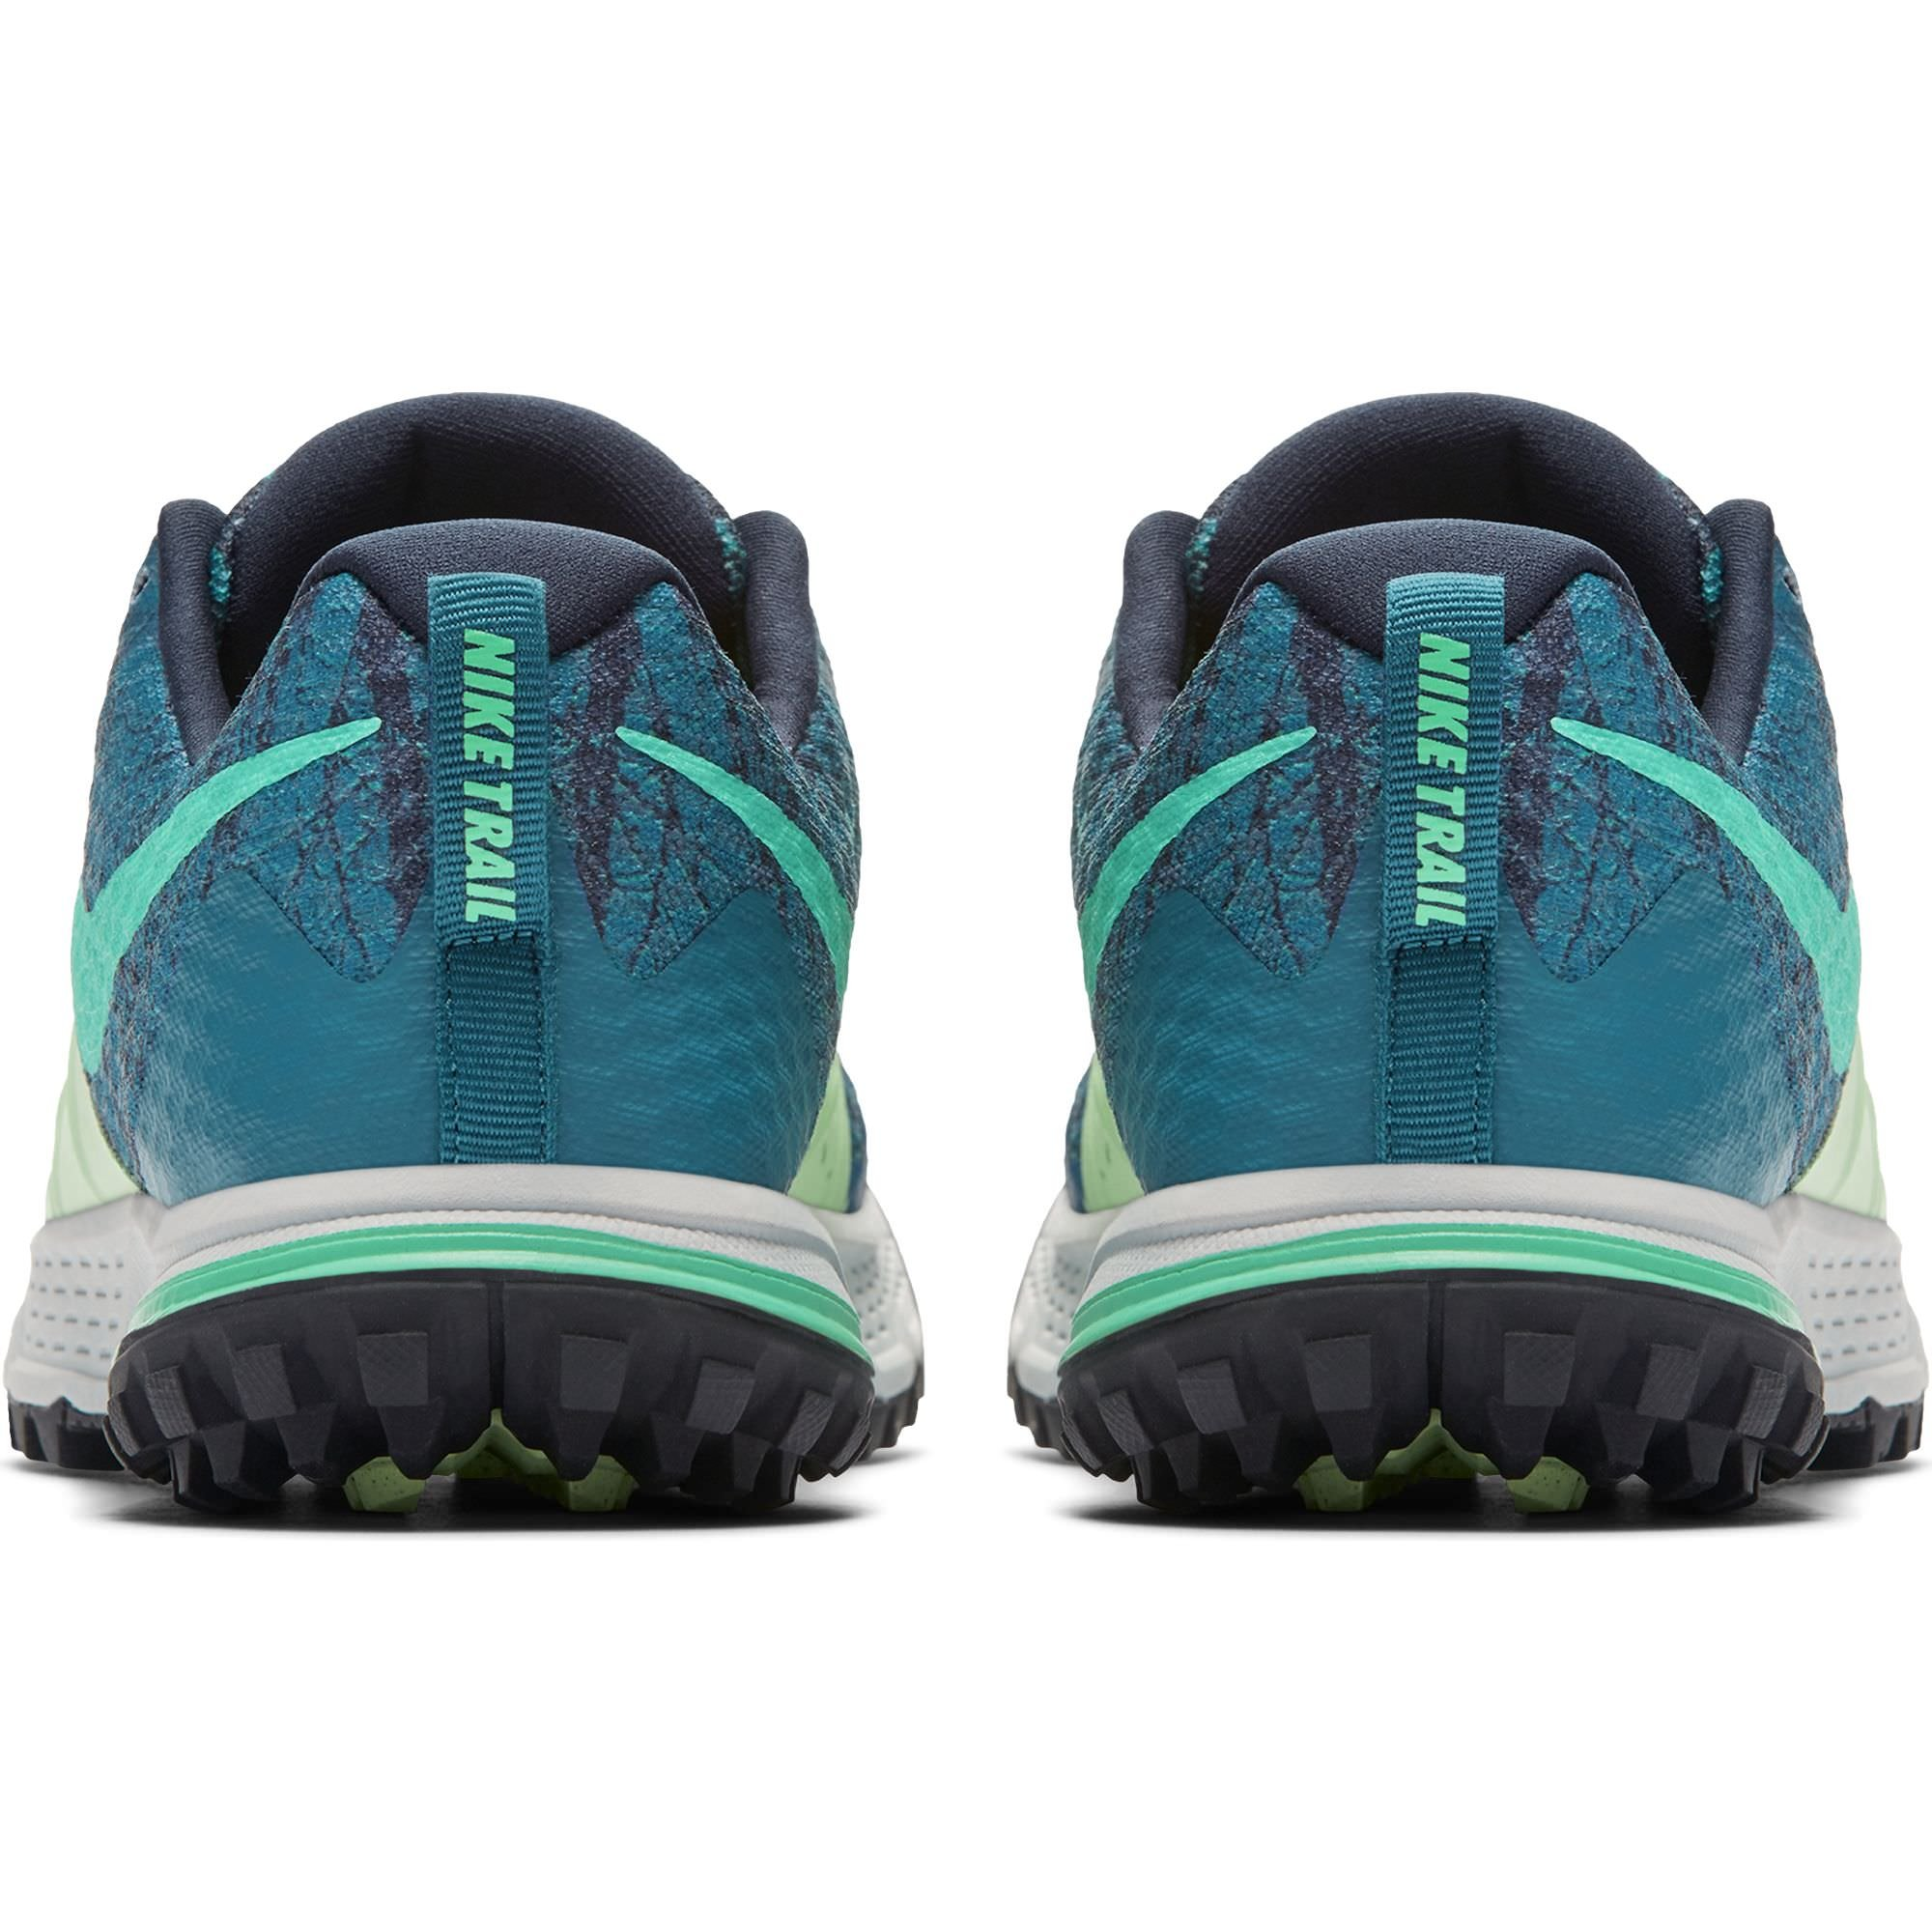 NIKE Women's Air Zoom Wildhorse 4 Running Shoe Green Abyss/Menta-Obsidian-Vapor Green 6.5 by NIKE (Image #4)